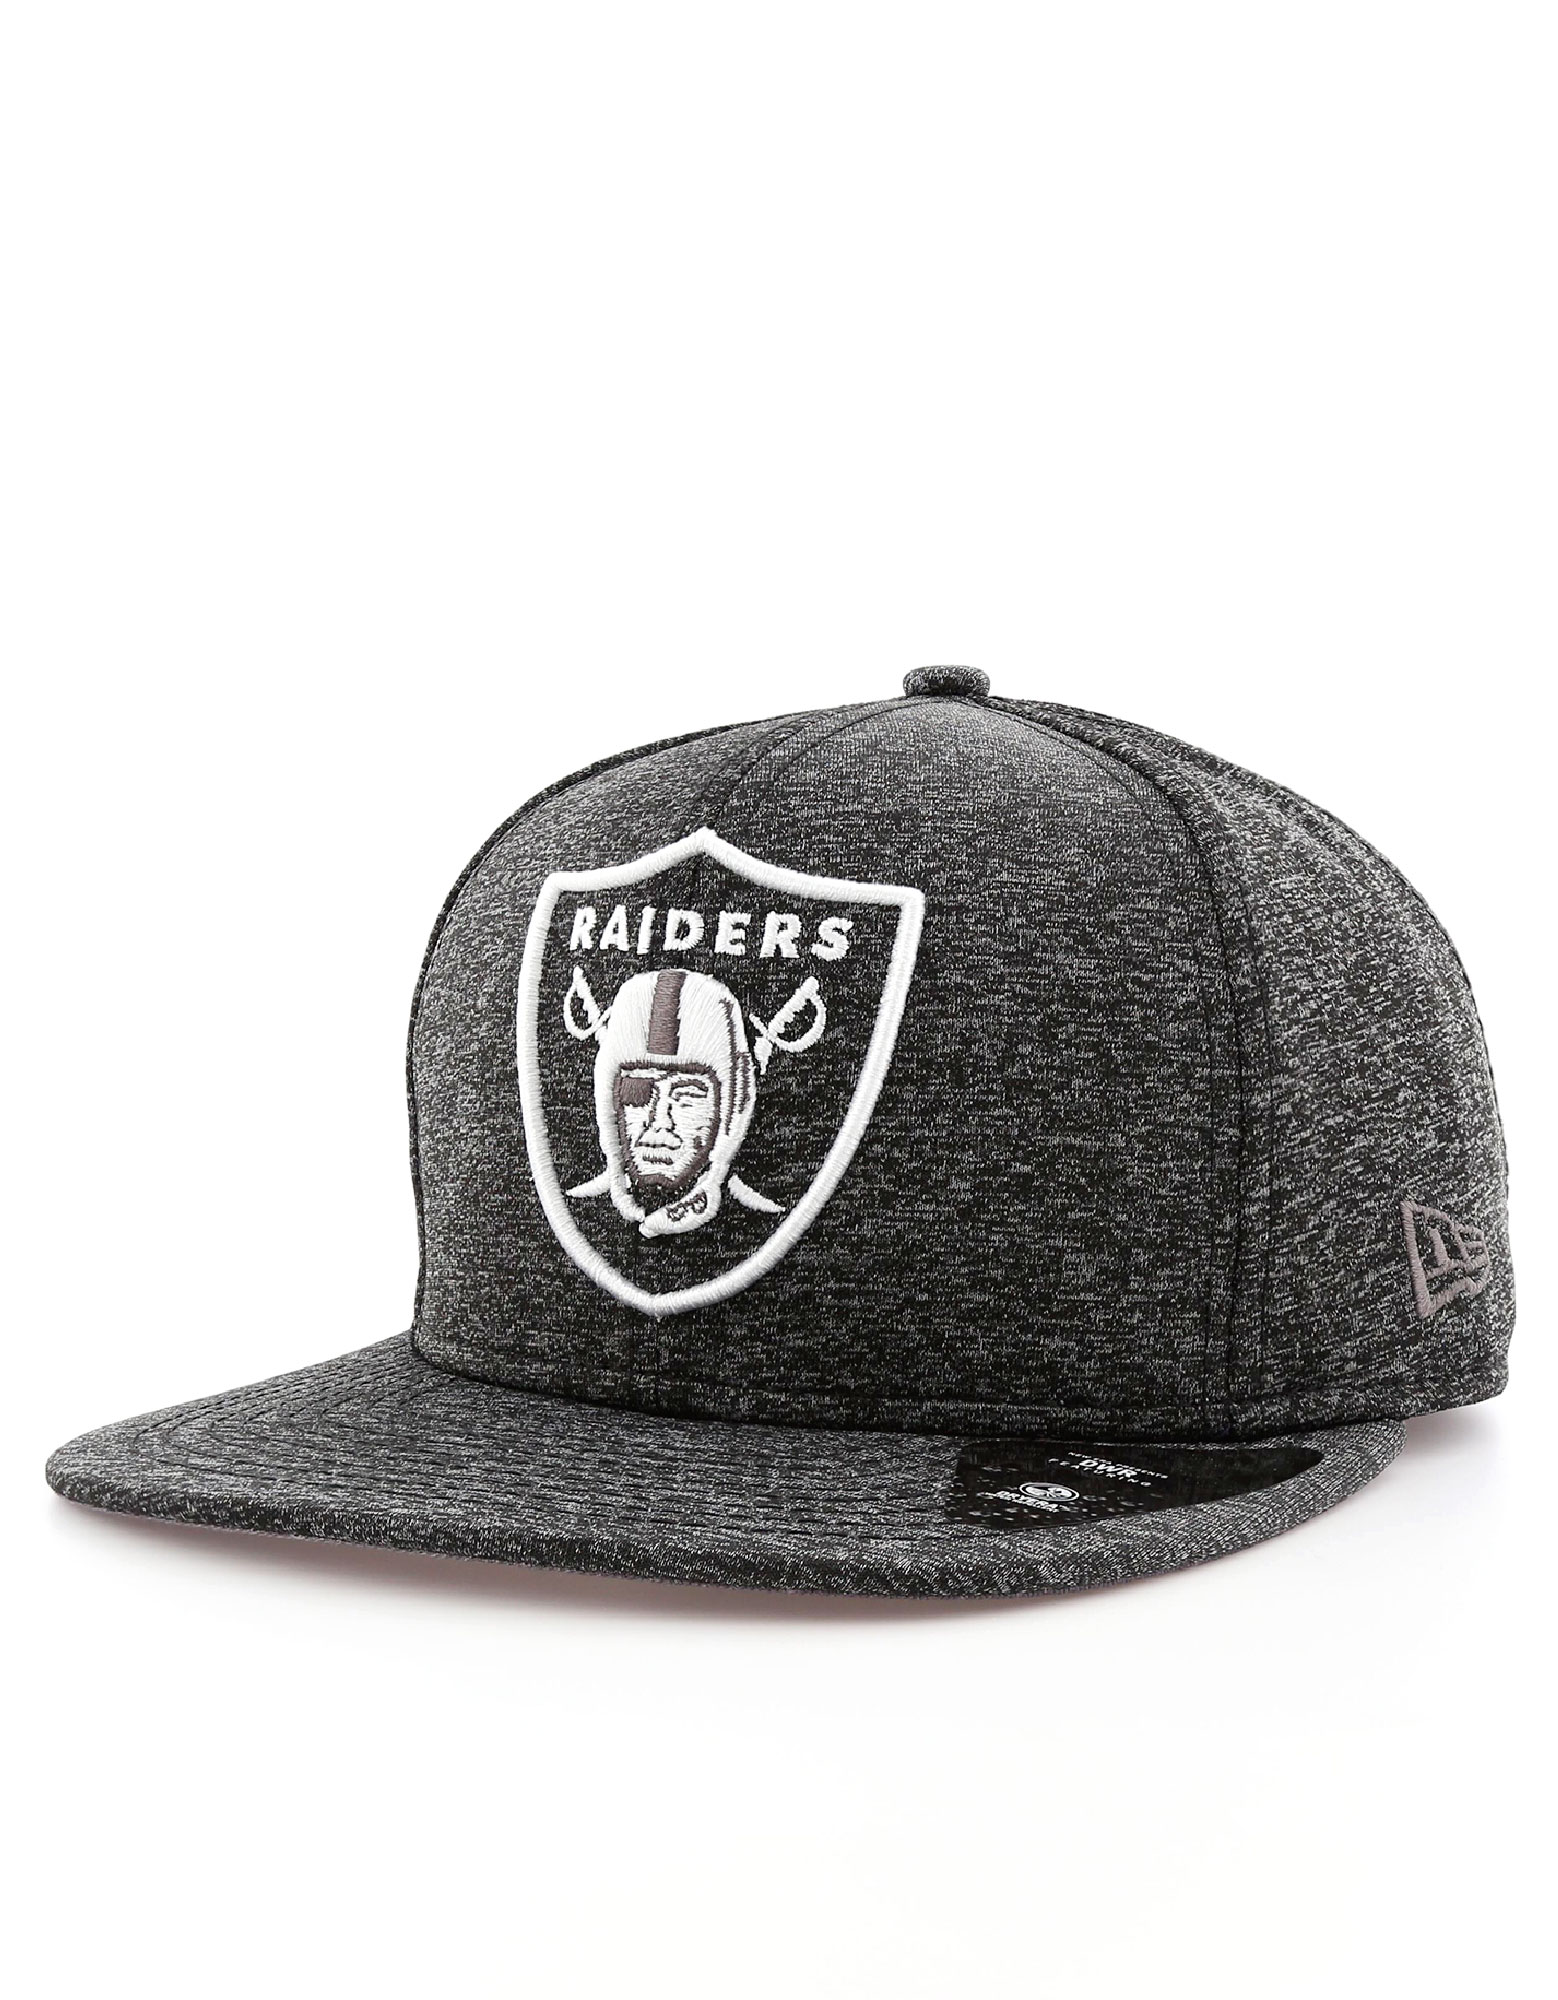 New Era Jersey Tech Oakland Raiders Graphite/White Cap S/M